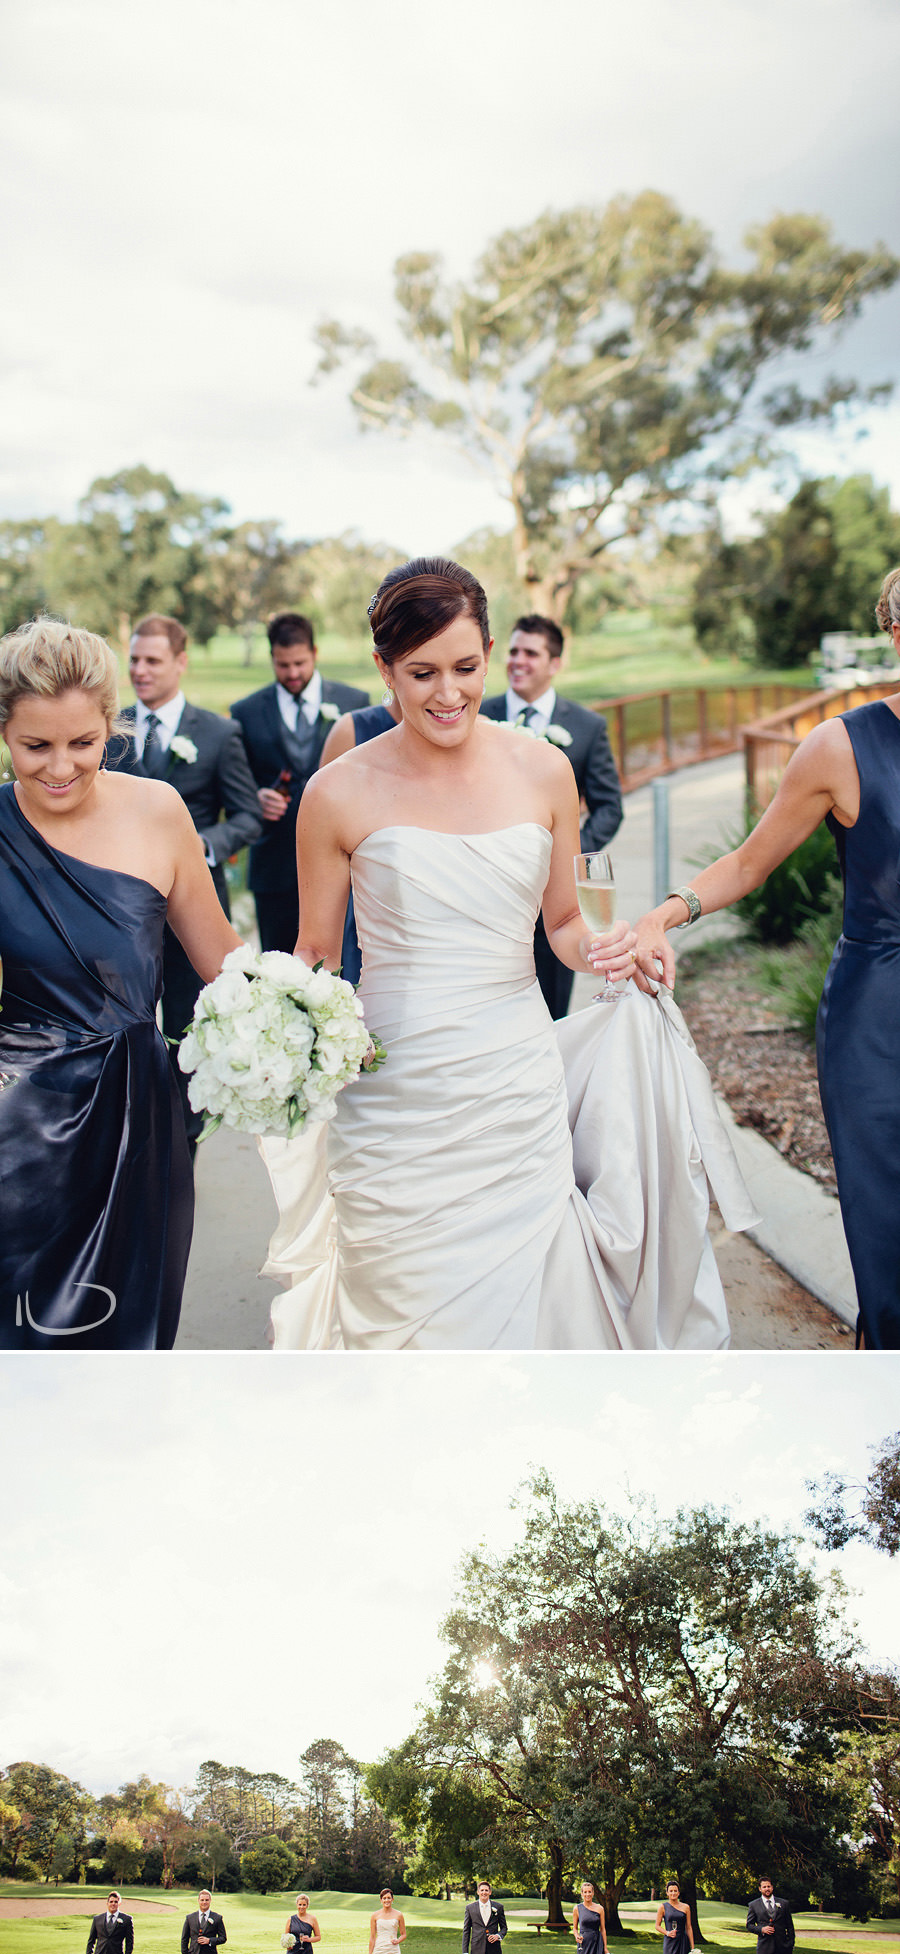 Federal Golf Club Wedding Photographer: Bridal party on golf course